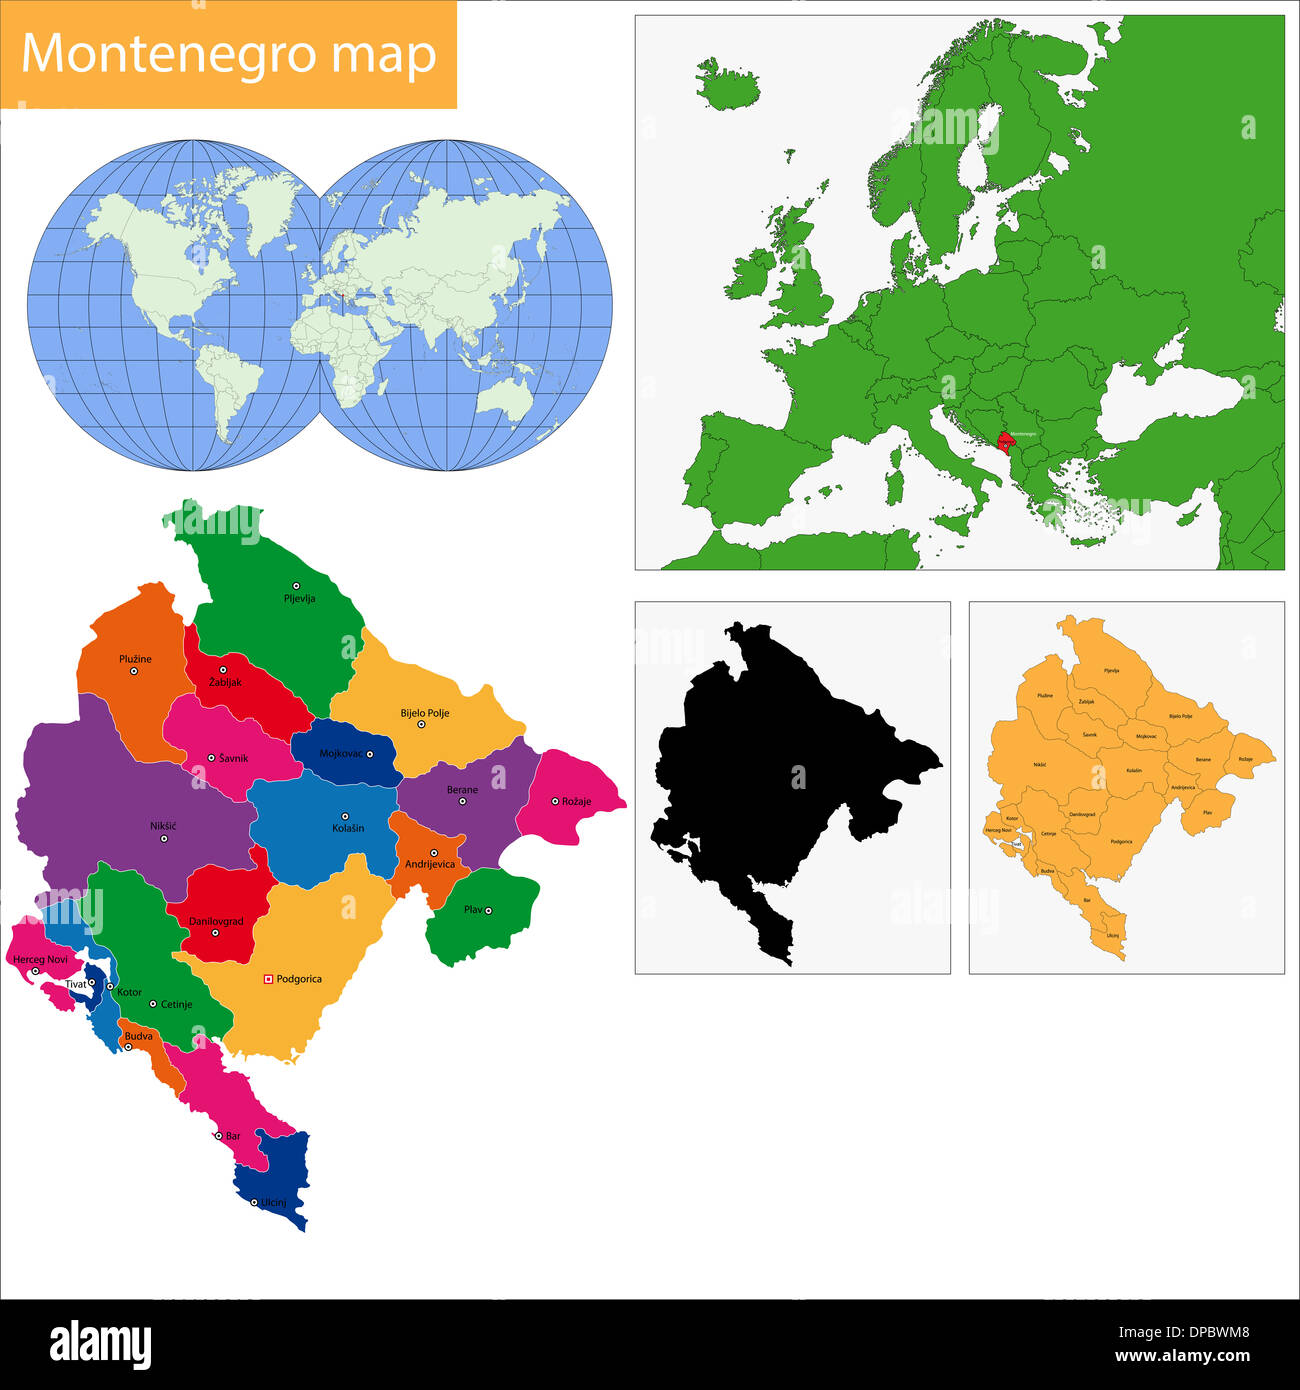 Administrative division of Montenegro - Stock Image